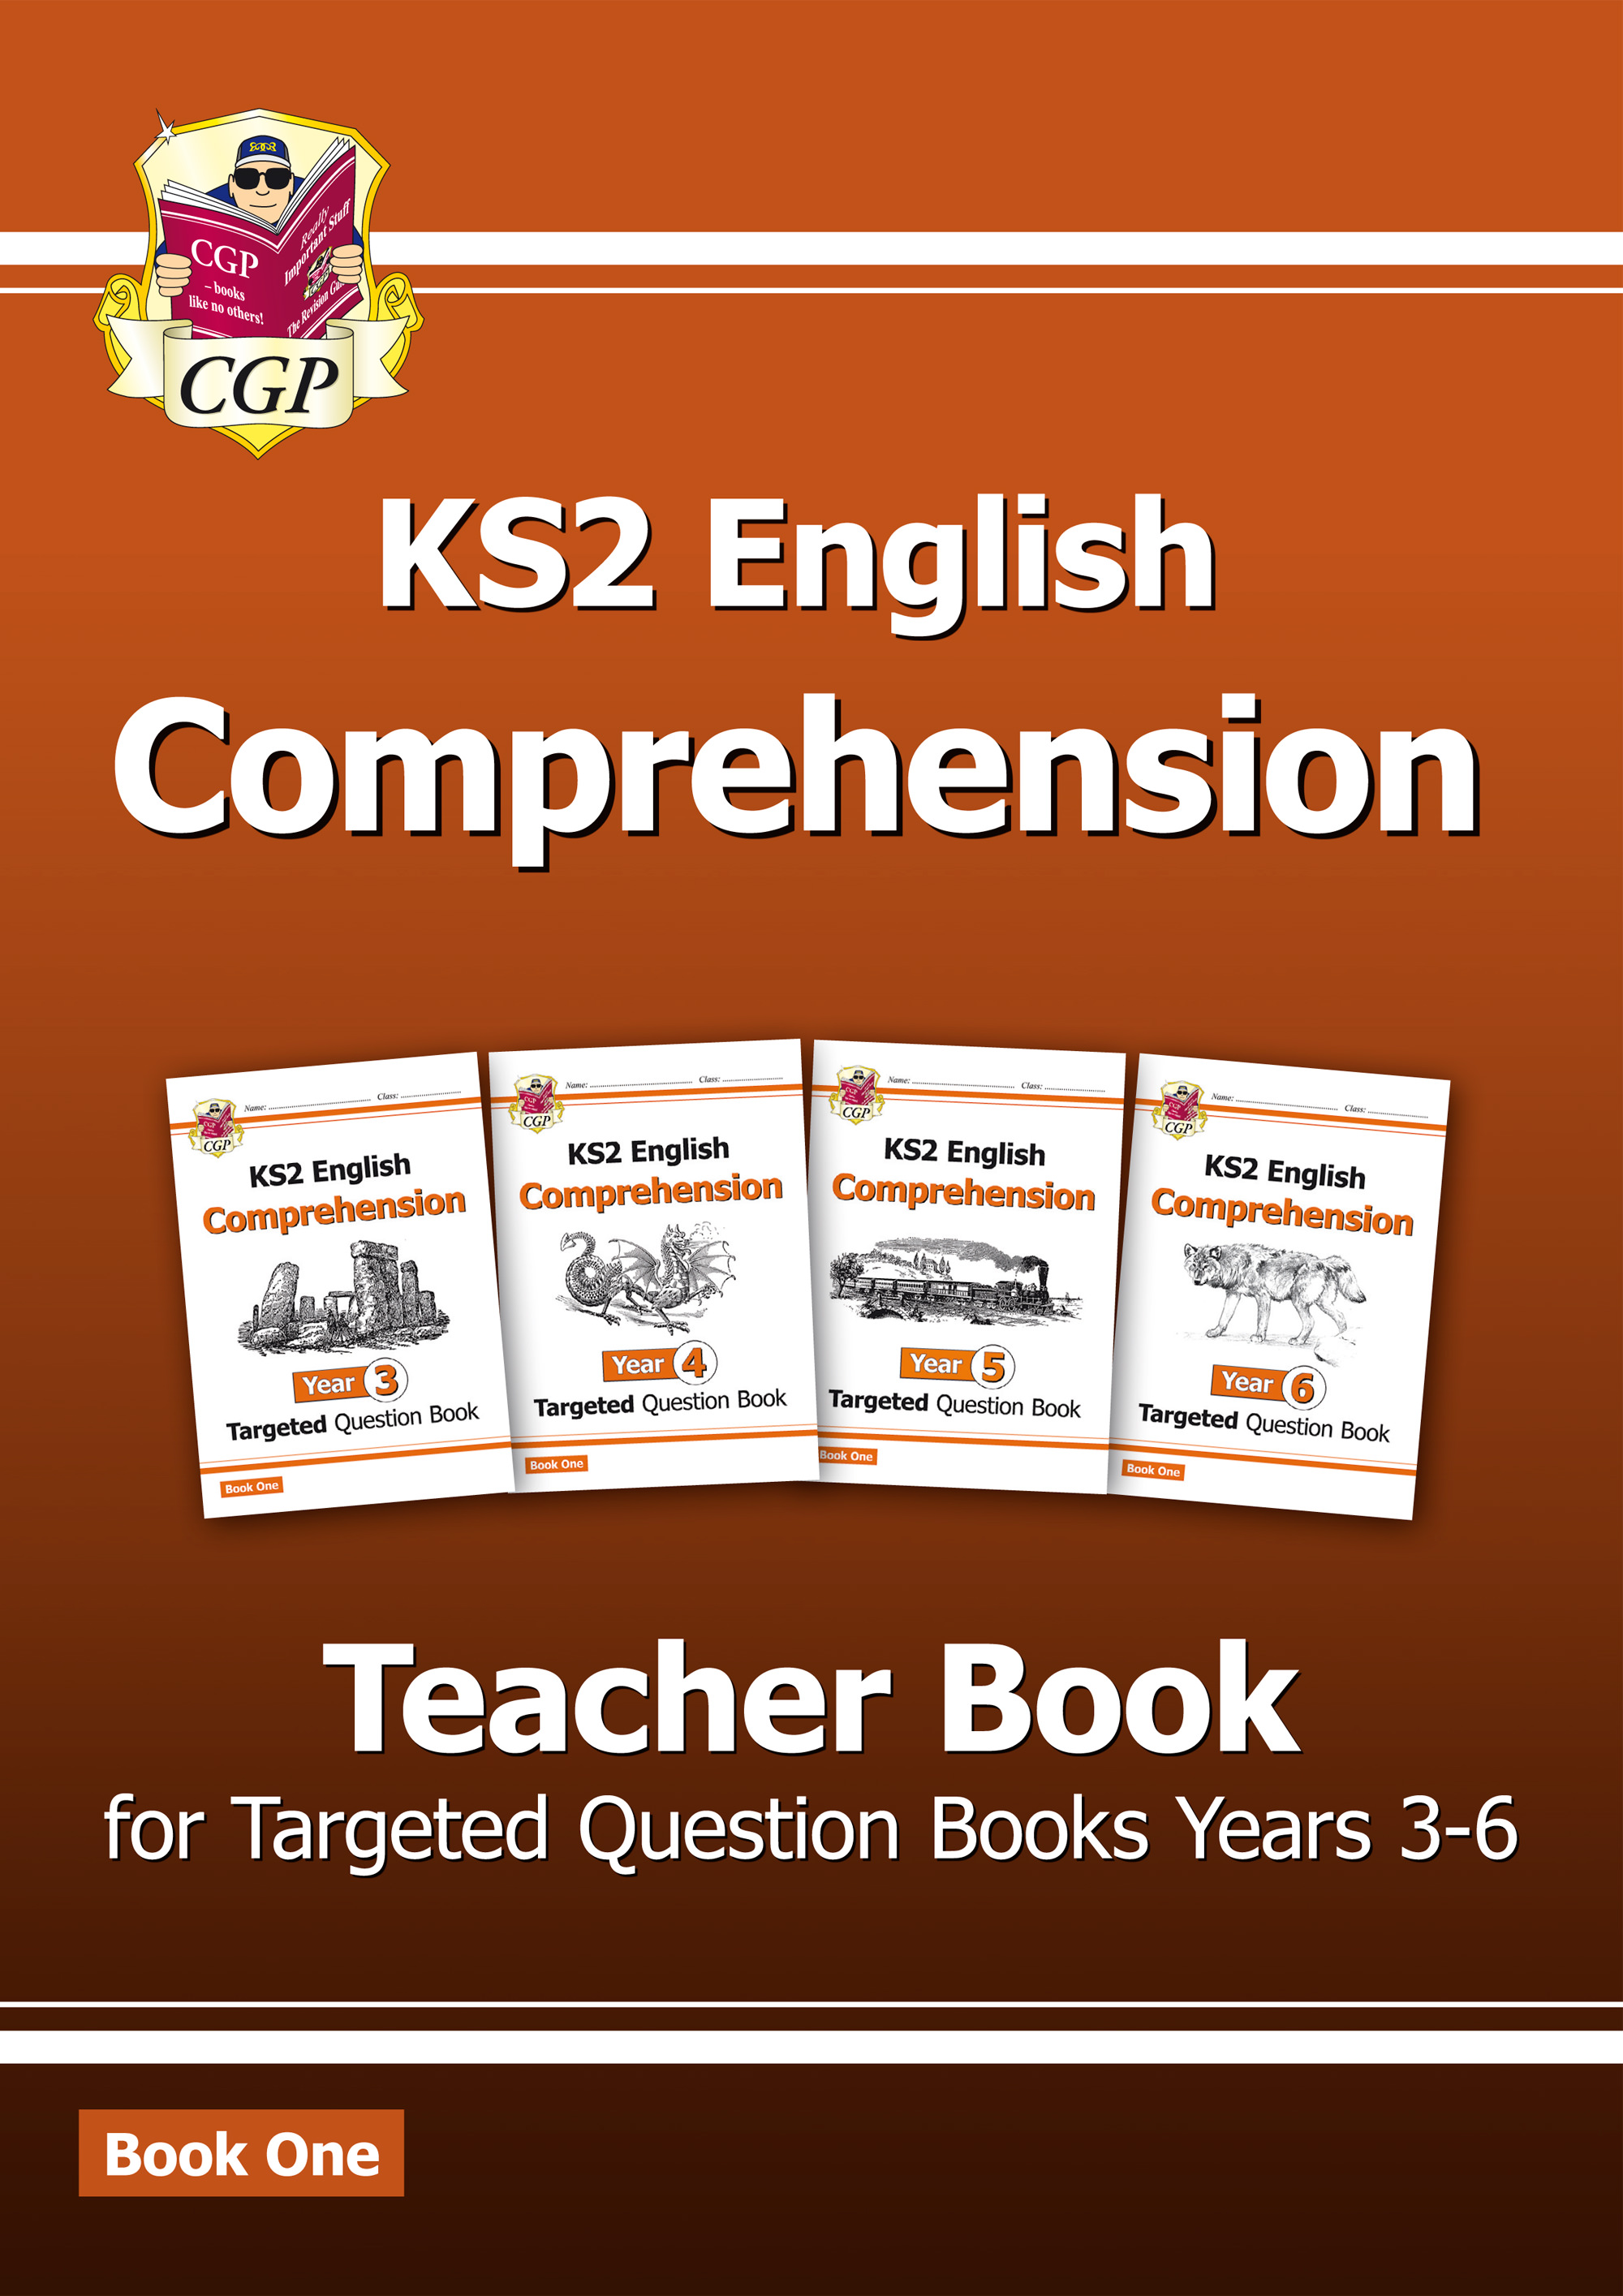 ECT21 - KS2 English Targeted Comprehension: Teacher Book 1, Years 3-6